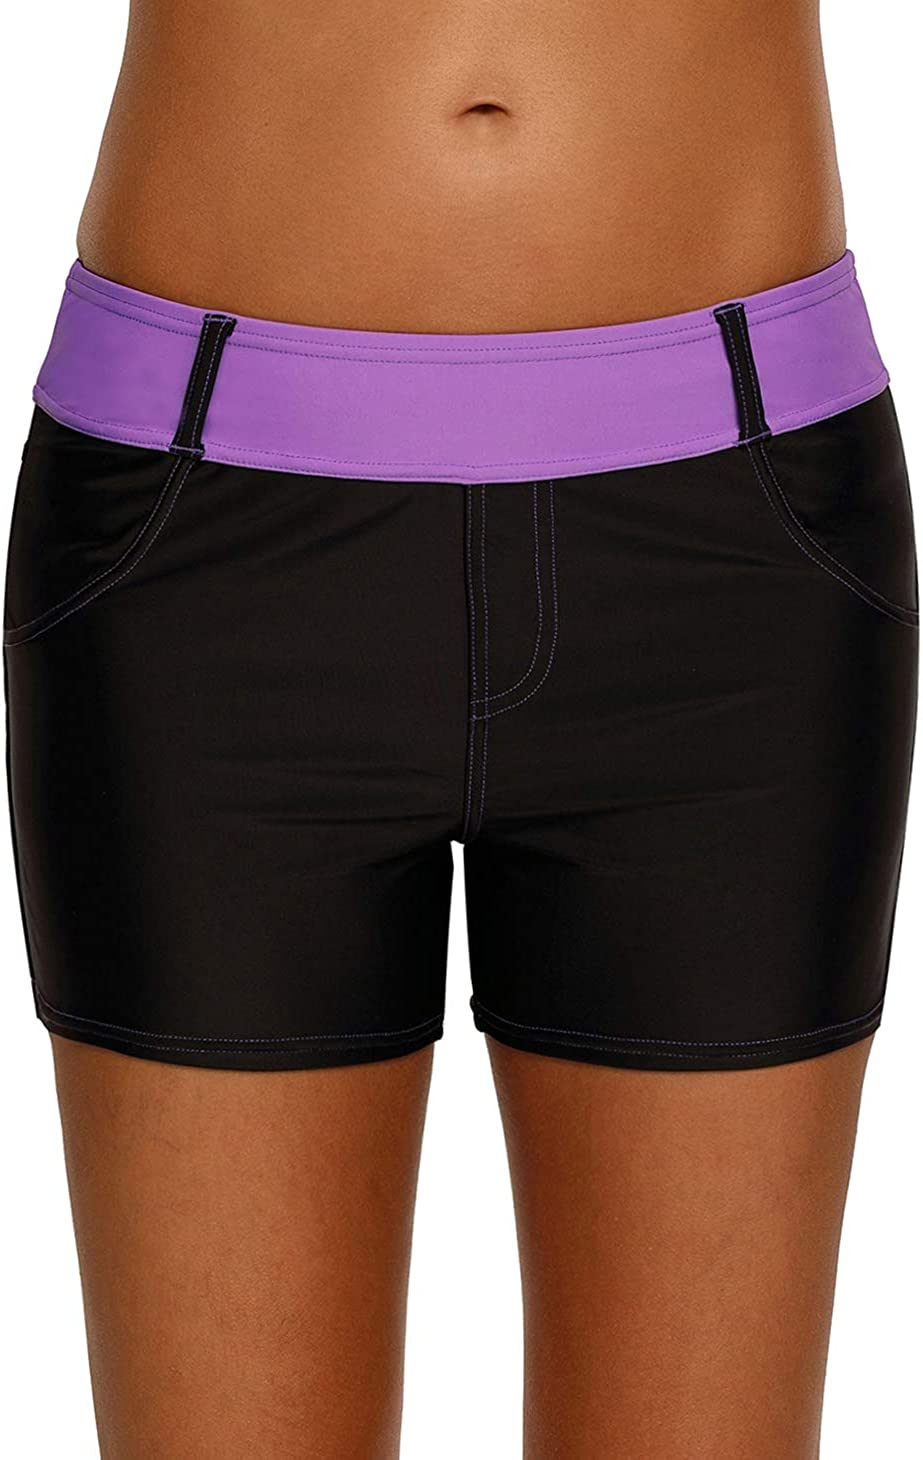 Dearlove Womens Color excellence Block Waistband security Swim Shorts T Trunks Board